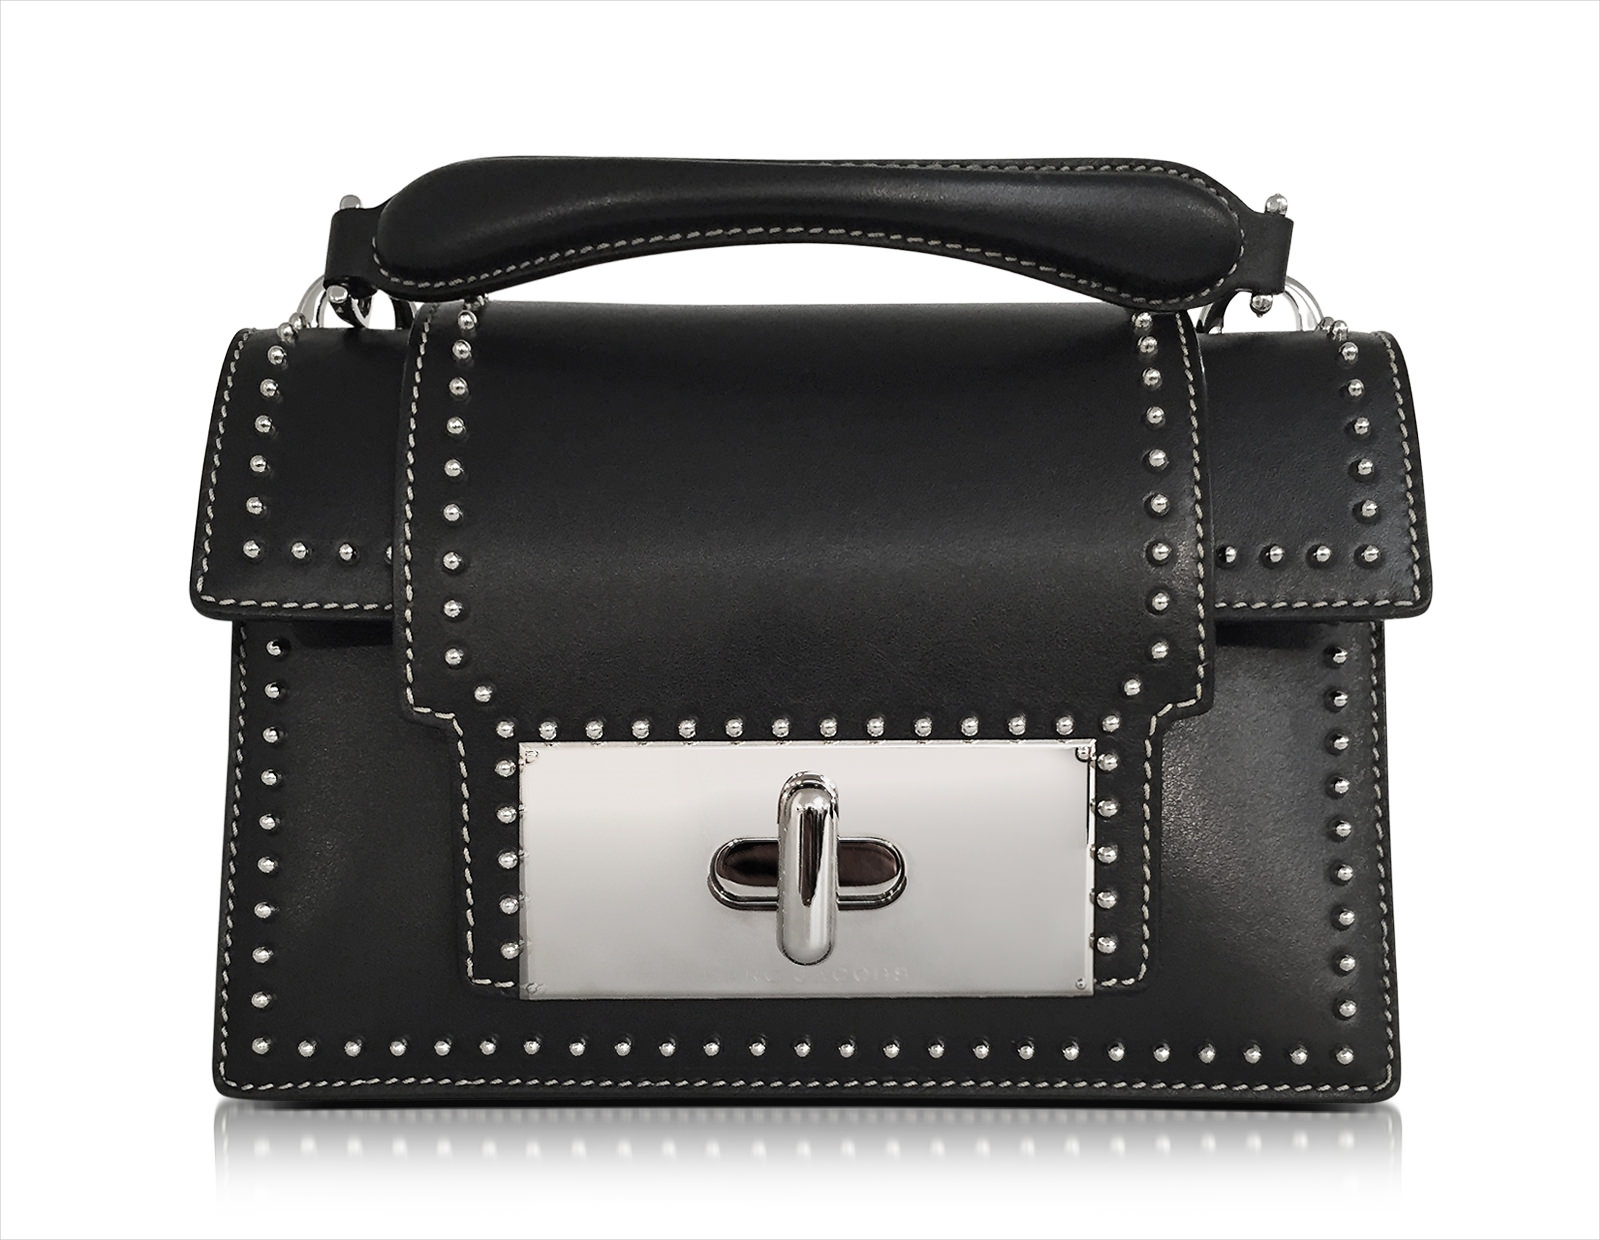 Marc Jacobs Studded Leather Bag